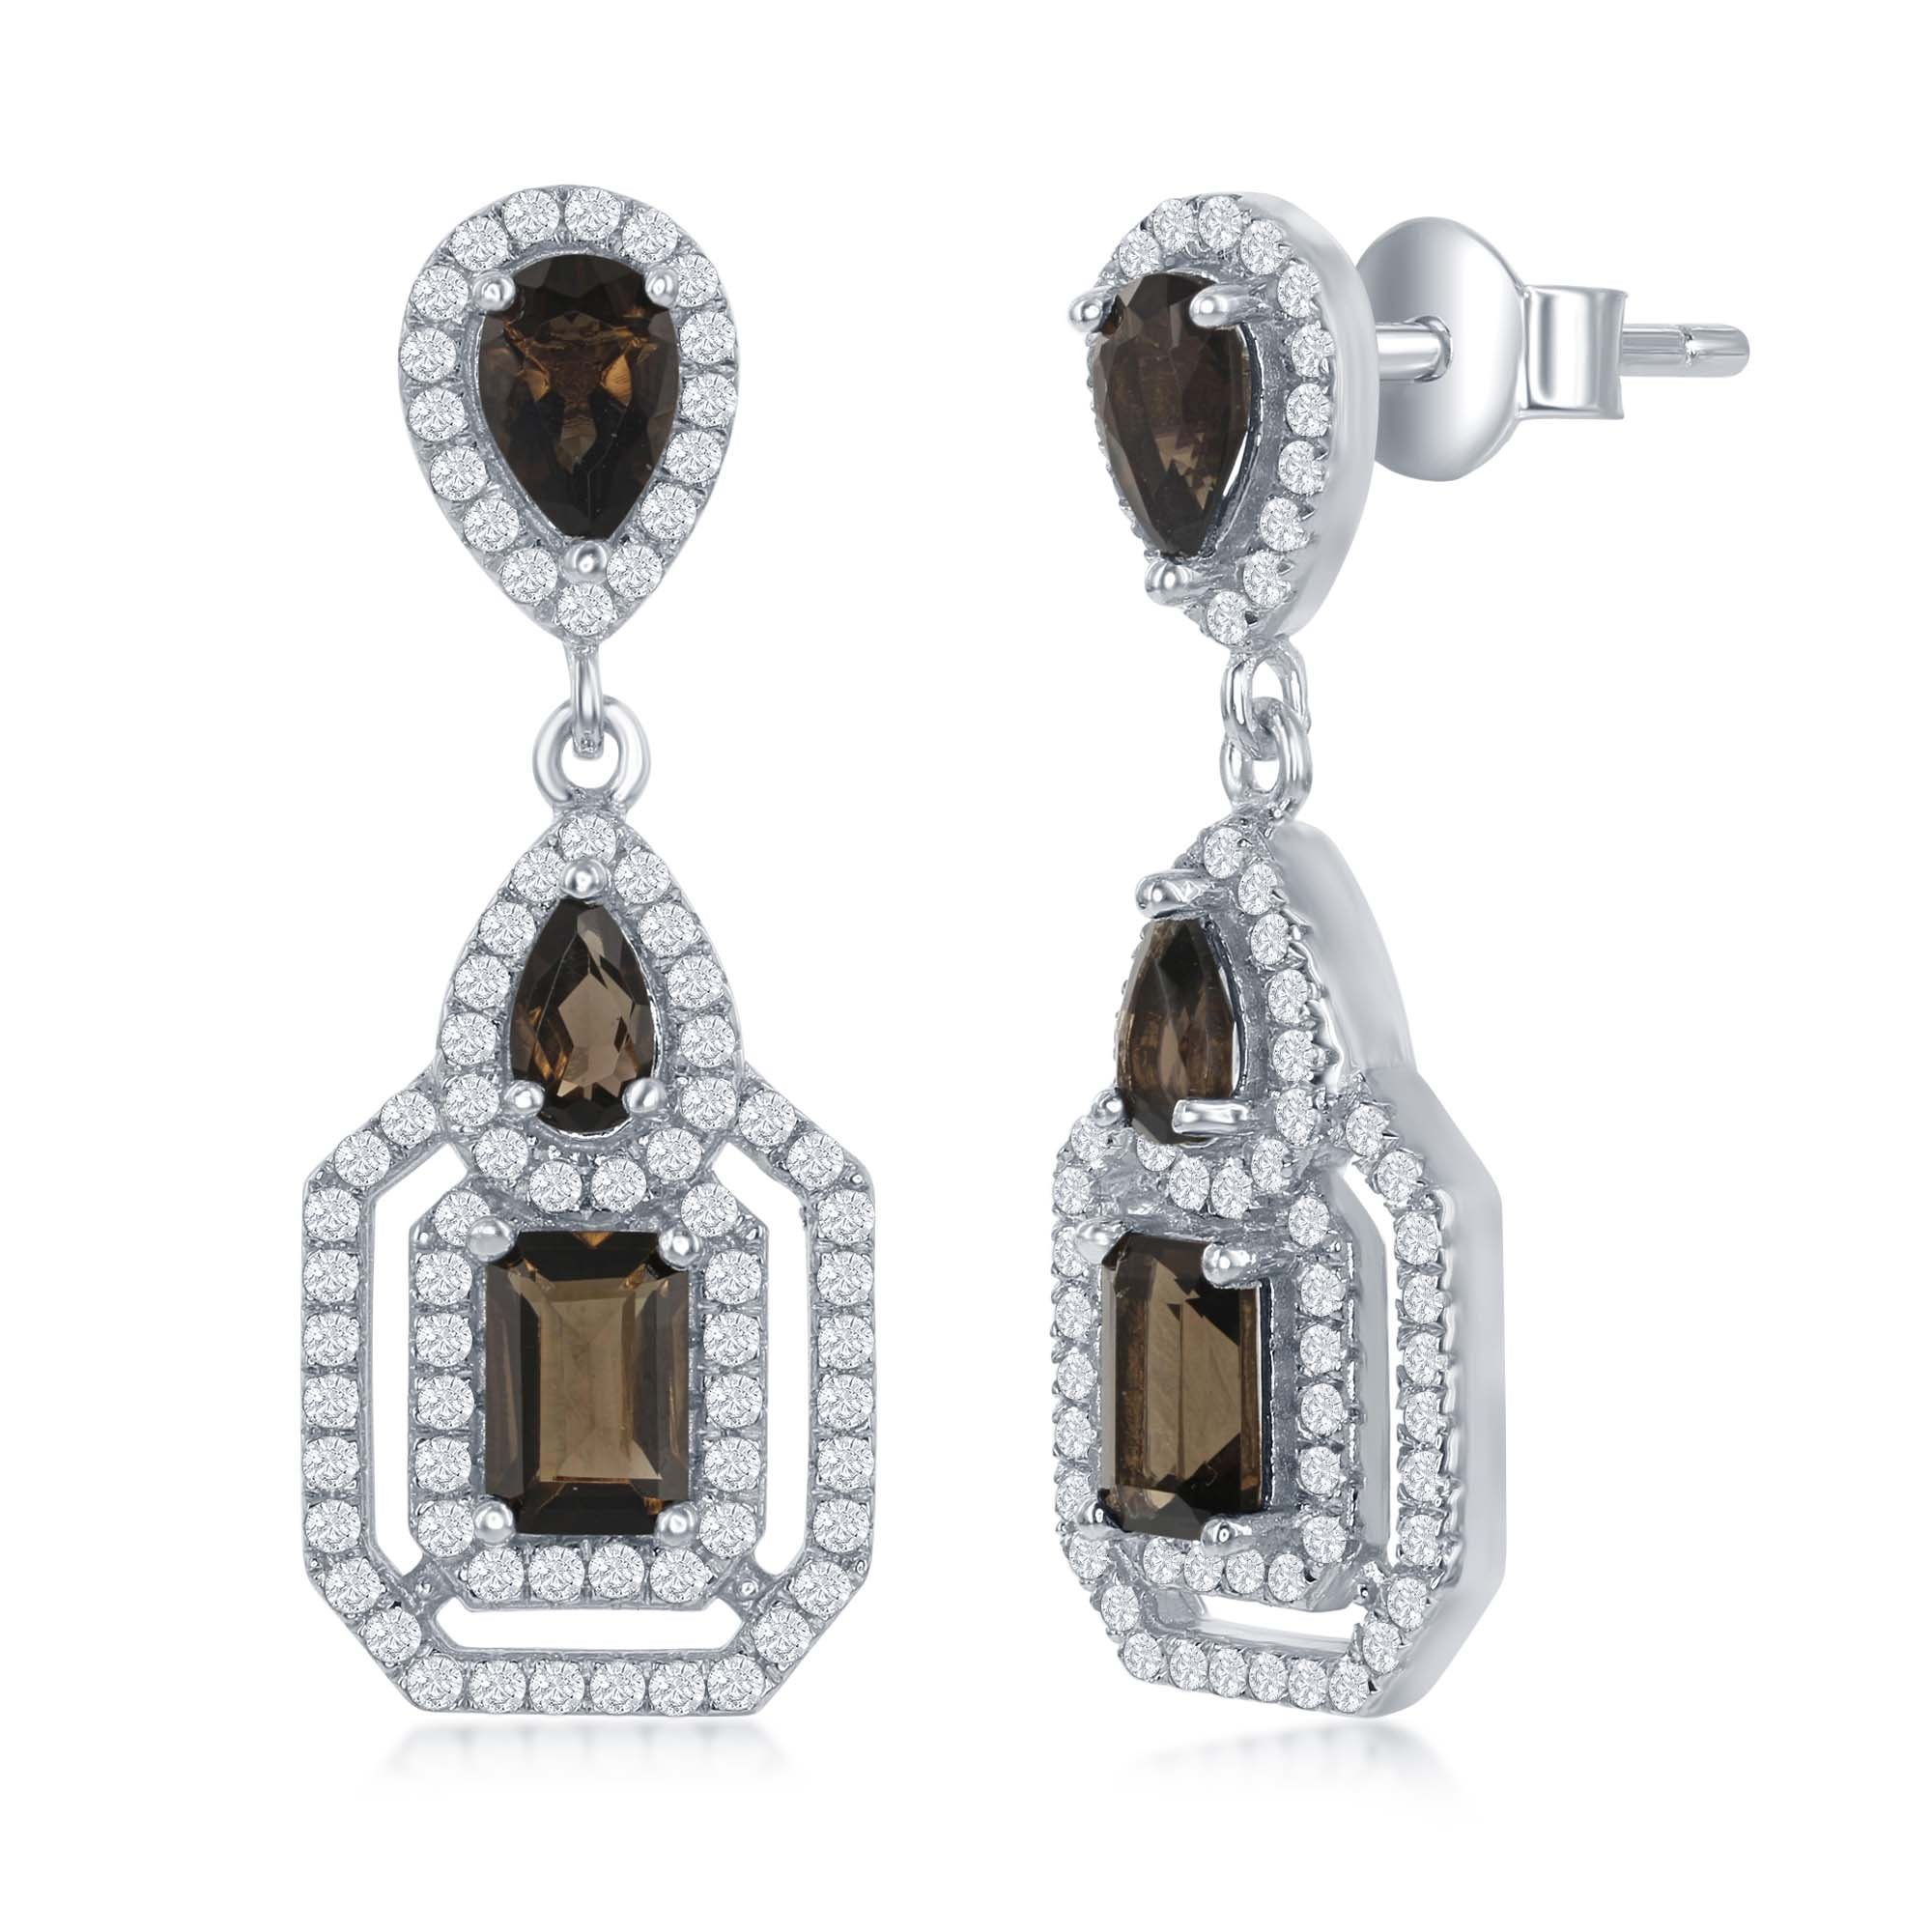 Sterling Silver High Polish Smoky Quartz Prong-Set with White Topaz Hexagon Border Earrings